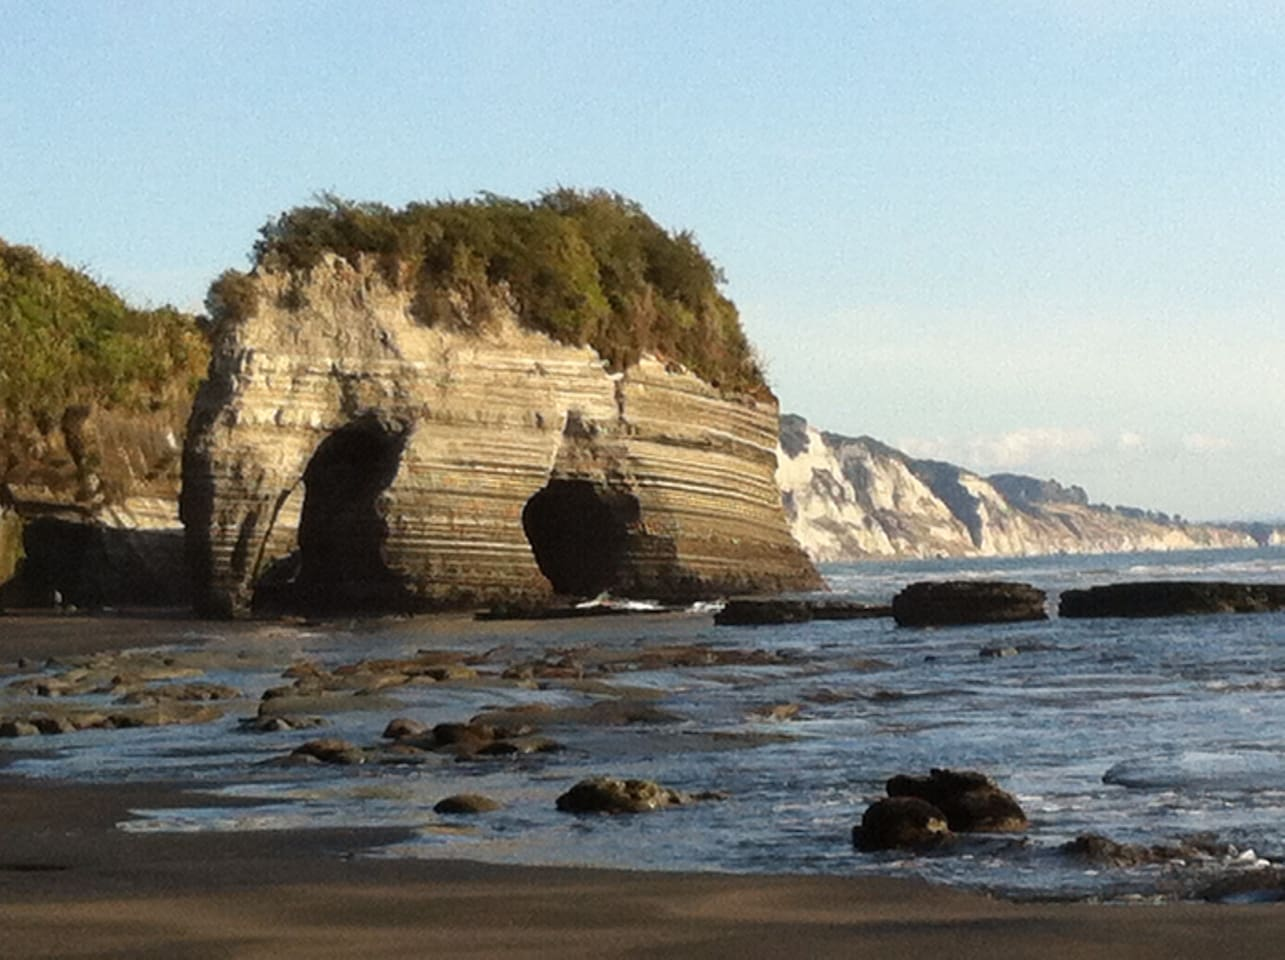 Elephant Rock has now lost his trunk! But he and the Three Sisters are a feature of Tongaporutu Beach with the White Cliffs in the background